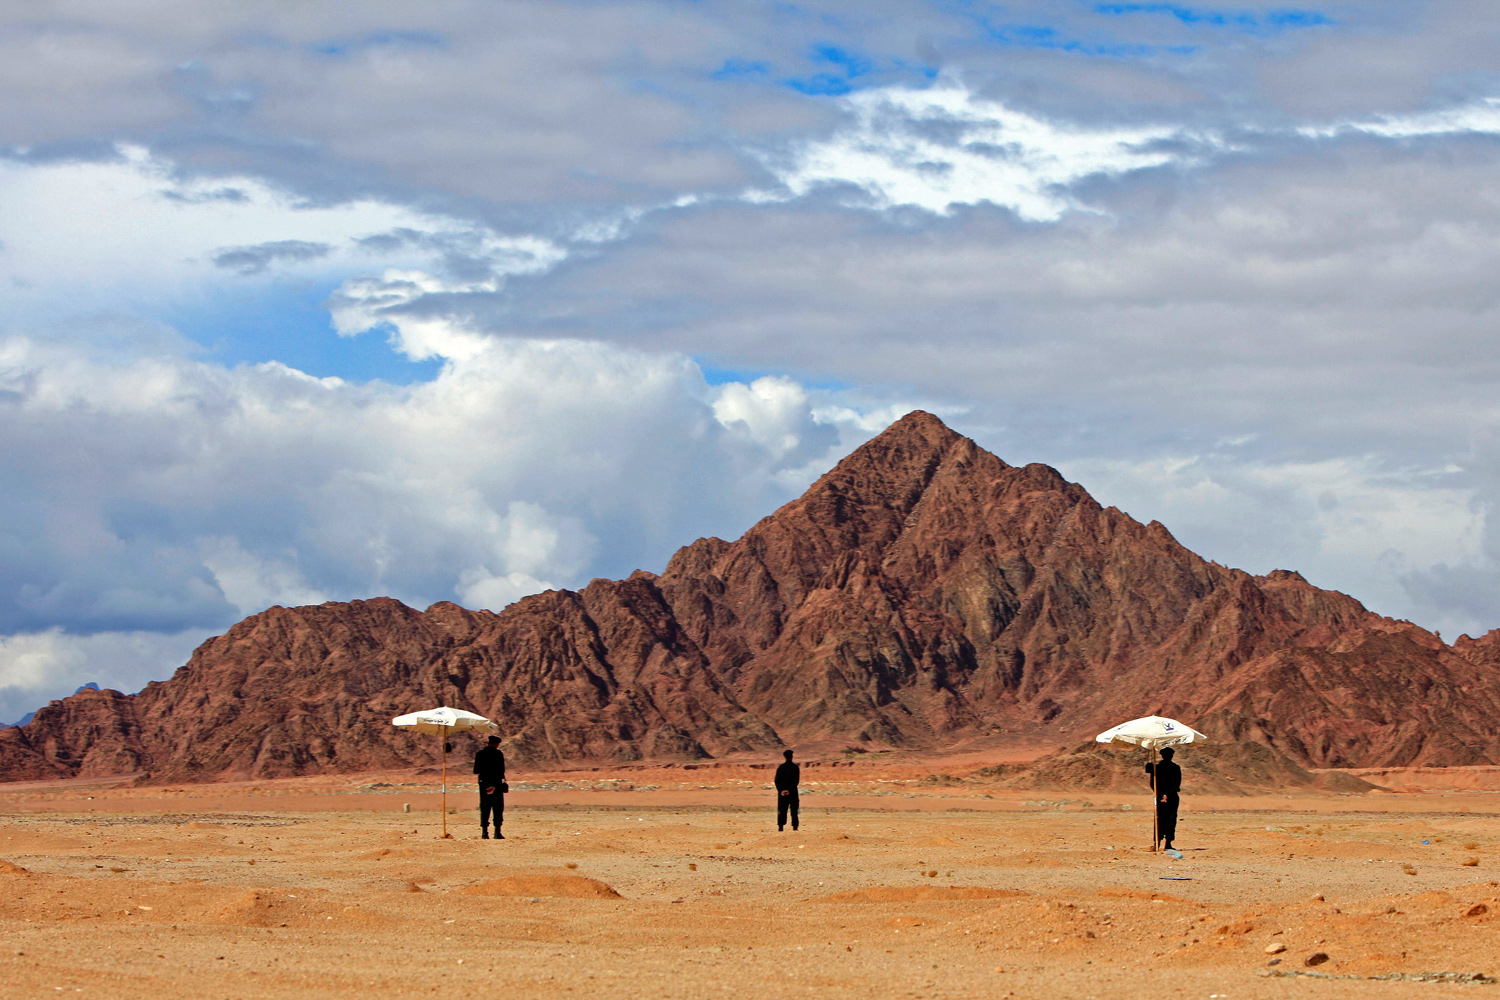 January 18, 2011. Egyptian soldiers stand alert at the Red Sea resort of Sharm el Sheik, Egypt in preparation for the Arab economic summit.